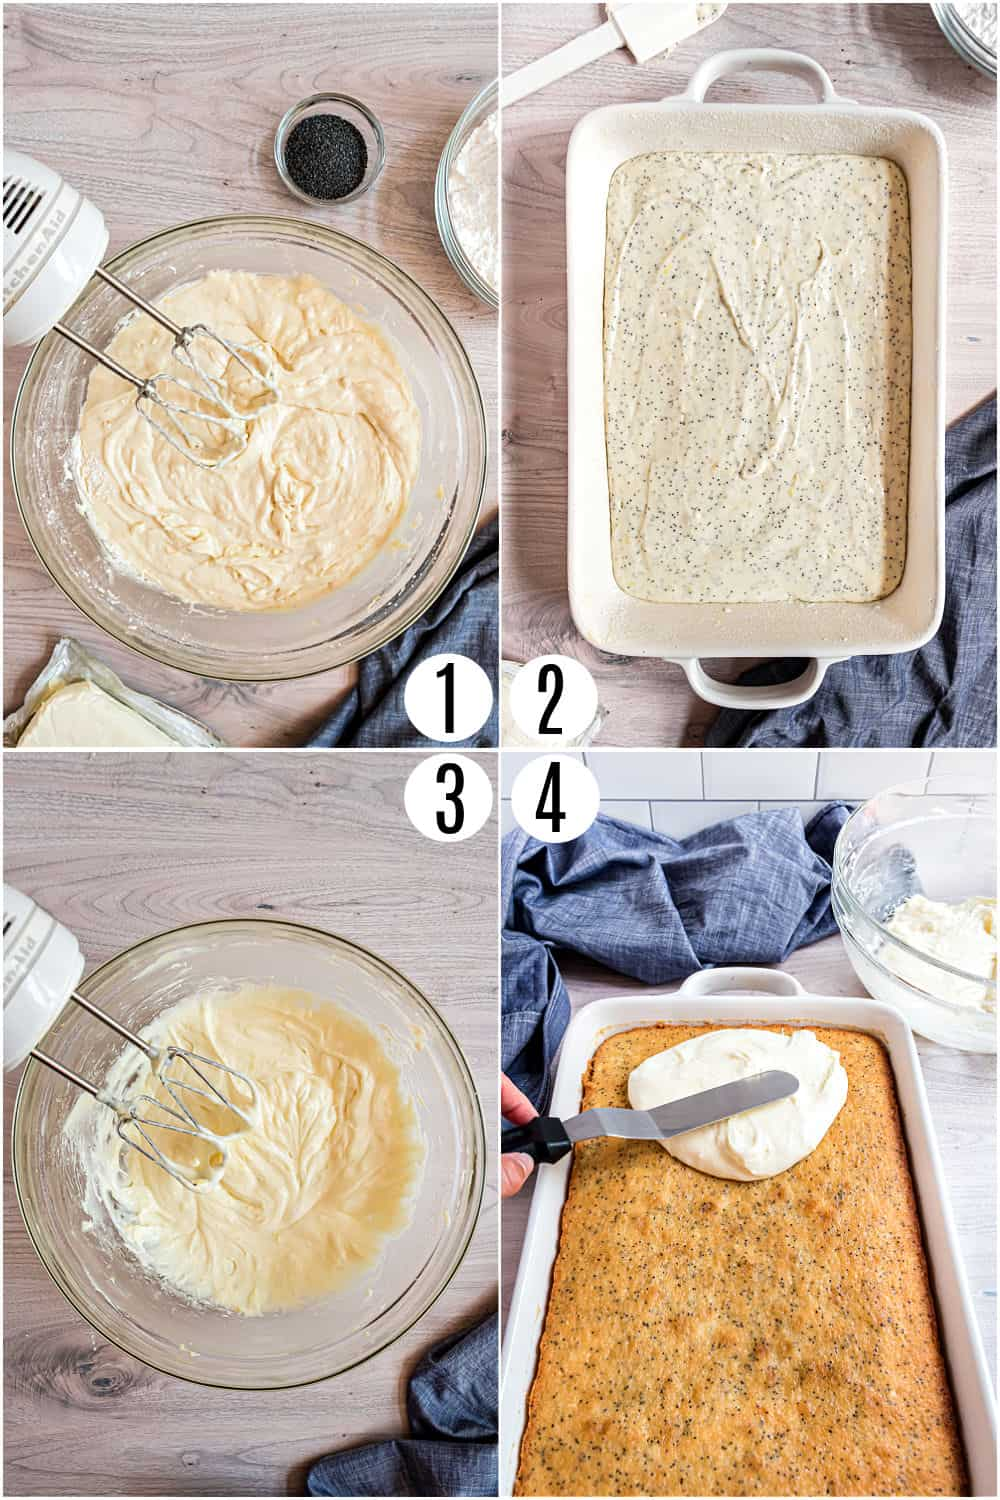 Step by step photos showing how to make lemon poppy seed cake from scratch.